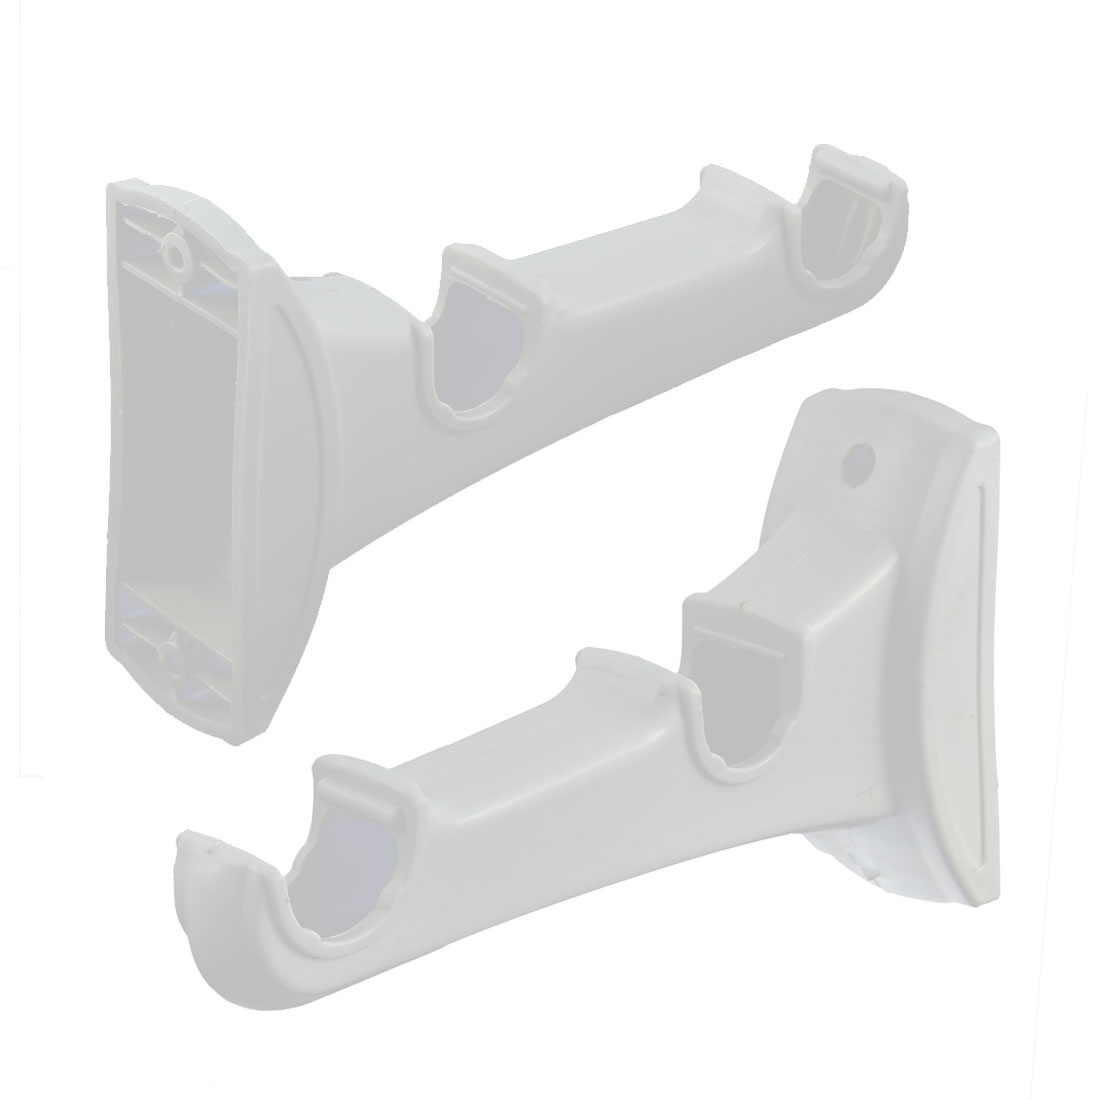 Plastic Double Grooves Wall Mount Curtain Rod Bracket White 2pcs